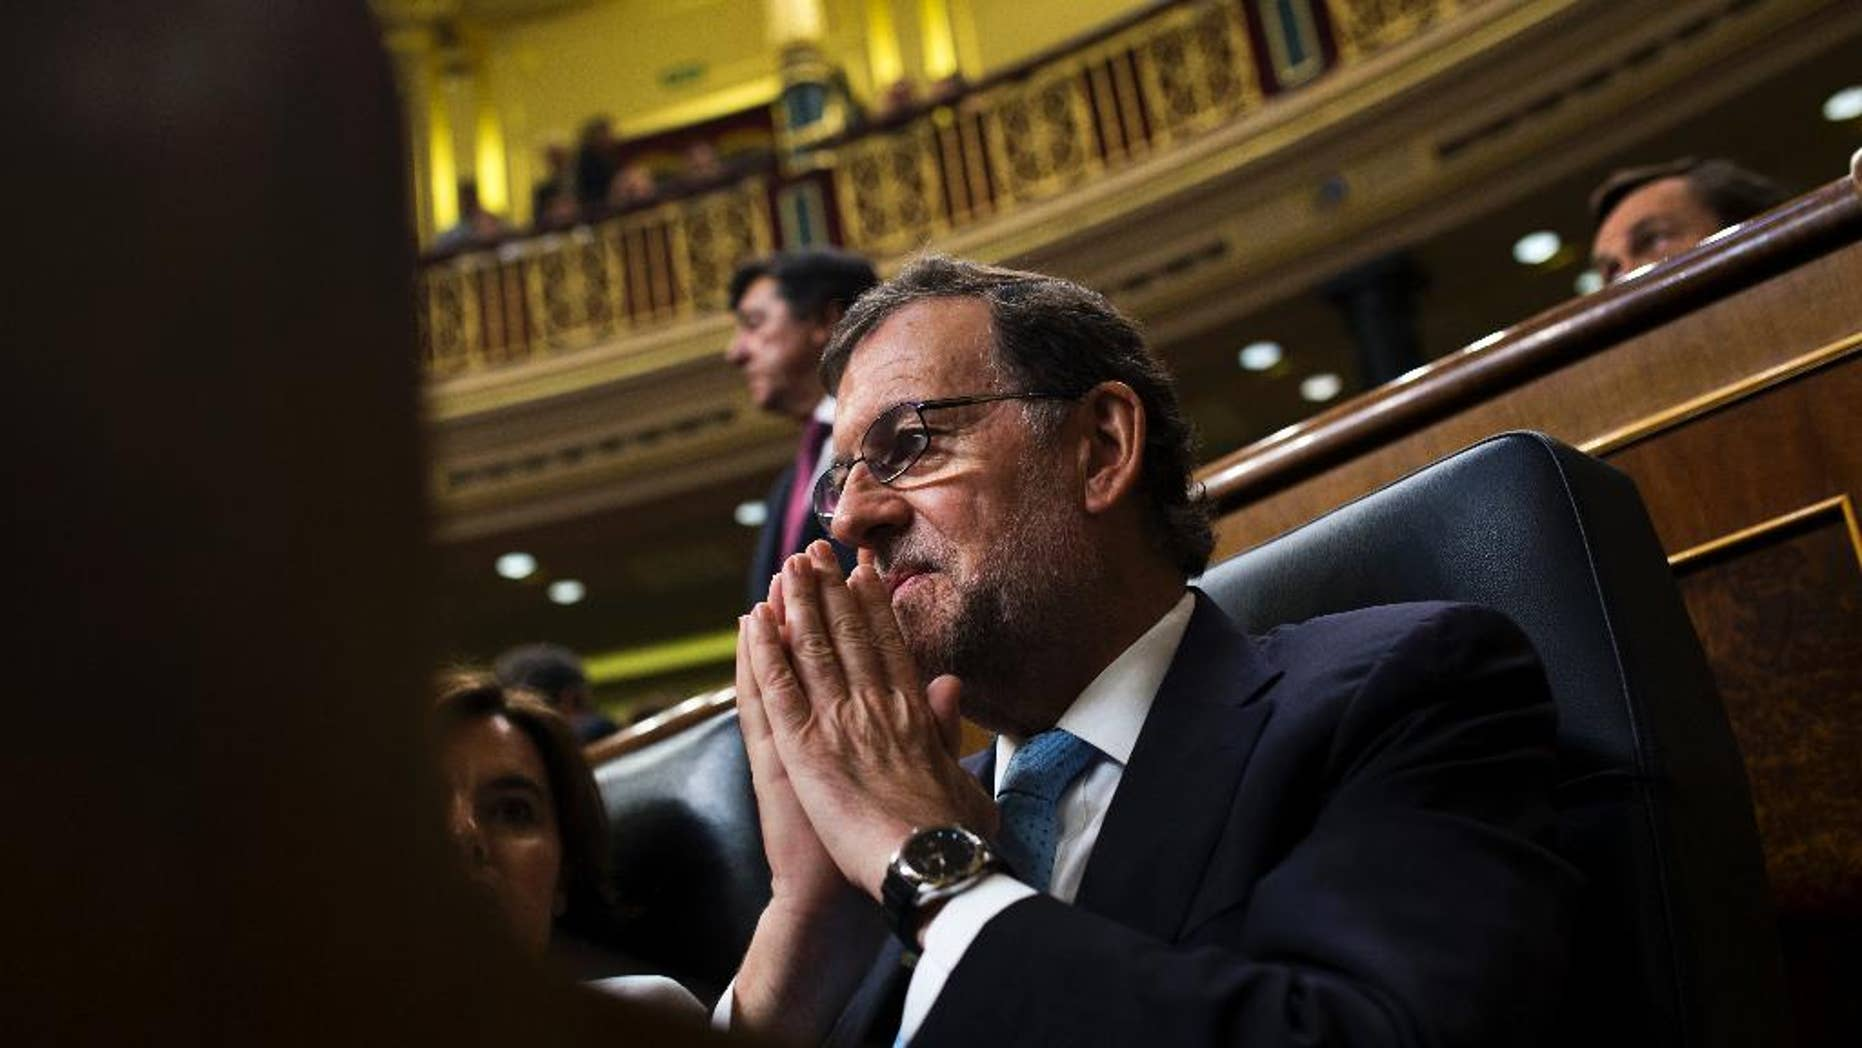 """FILE - In this July 19, 2016 file photo, Spain's acting Prime Minister Mariano Rajoy attends the Spanish parliament in Madrid. Spain's acting Prime Minister Mariano Rajoy warned on Saturday Aug. 13, 2016 that a third round of elections in one year would make Spain """"the laughingstock of Europe"""" as he tries to cobble together support to form a government and end eight months of political deadlock. (AP Photo/Francisco Seco, FILE)"""